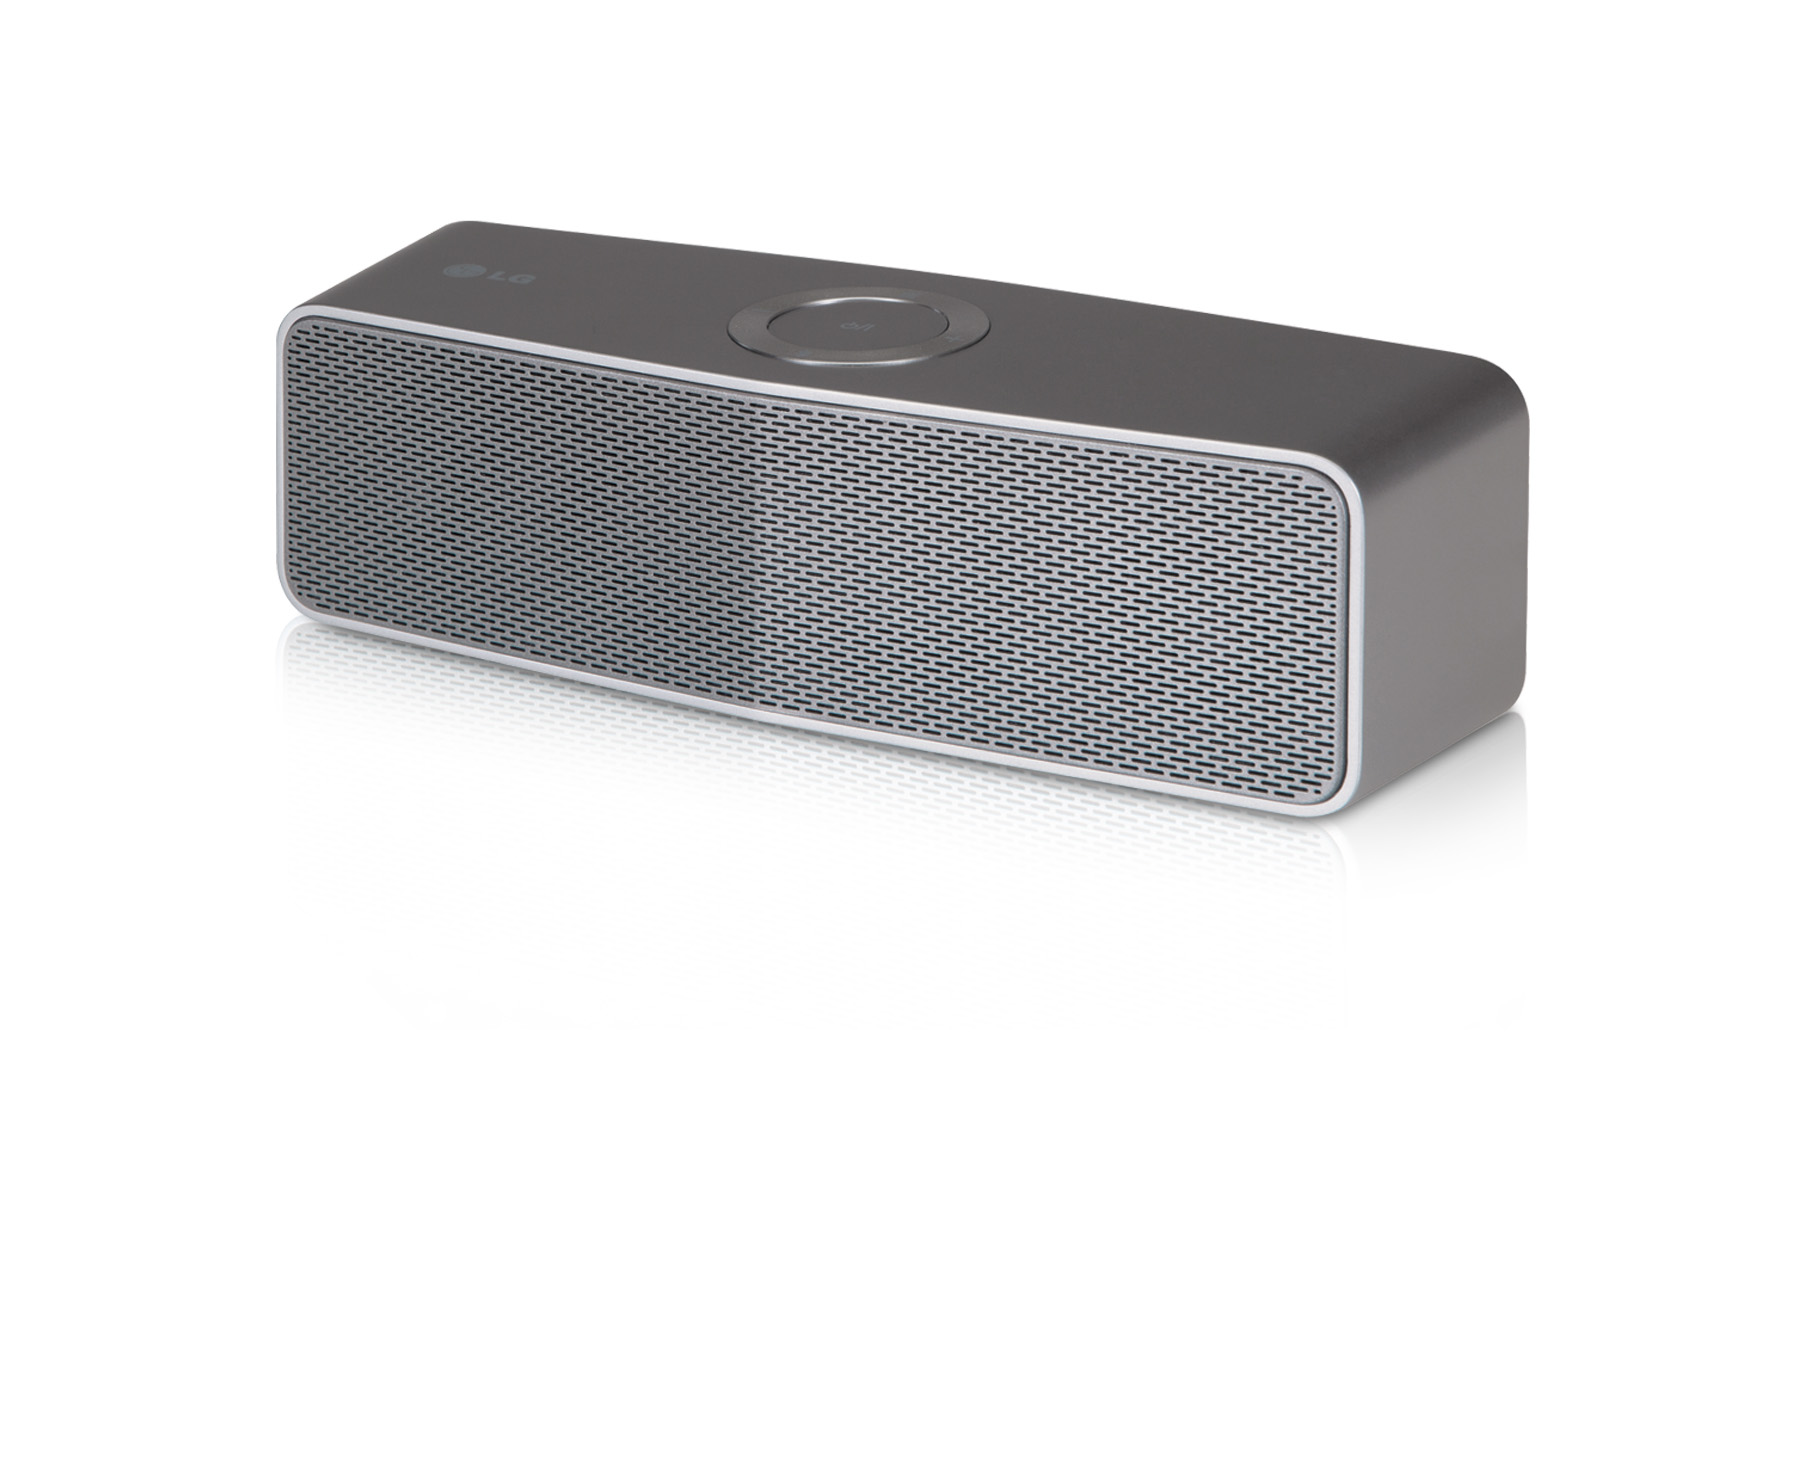 LG MUSIC FLOW WI-FI SERIES TAKES WIRELESS MUSIC TO A NEW